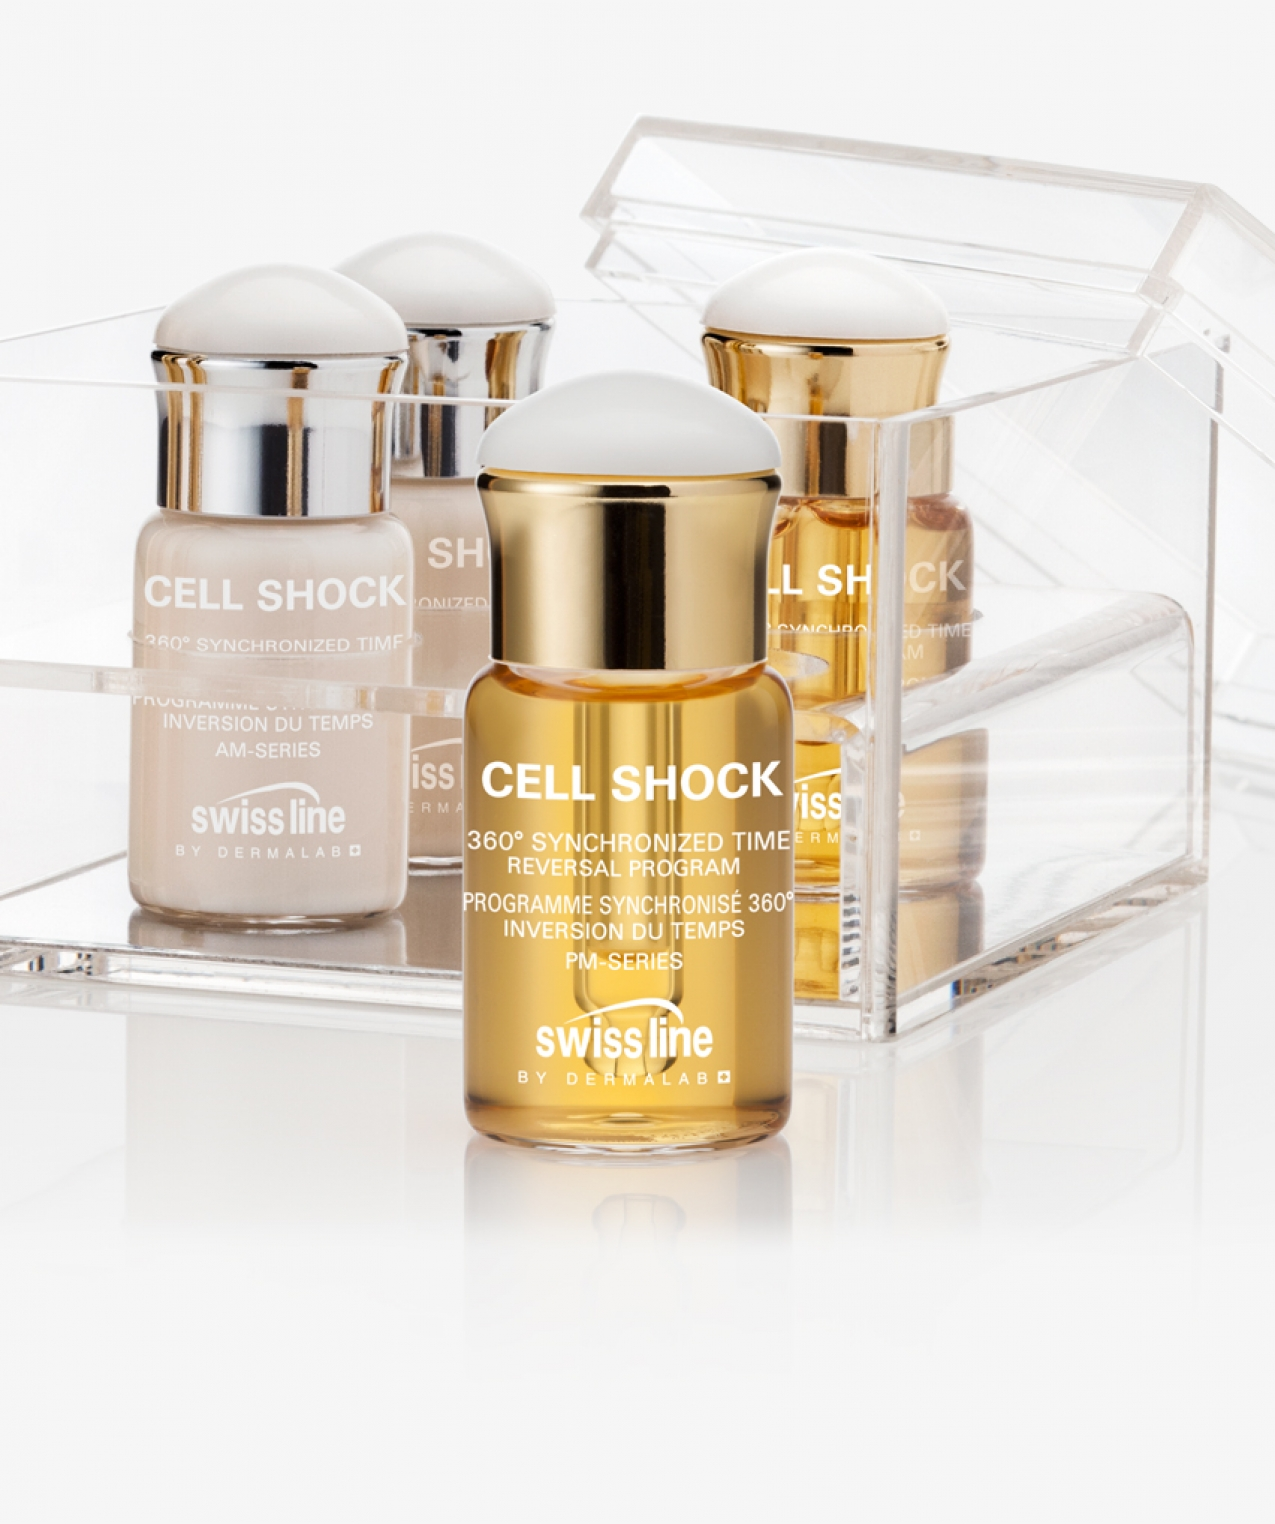 """NEW Swissline 360 Synchronized time reversal program  """"The cure for stress, fatigue, and seasonal changes""""  An ingeneous """"time reversal"""" anti-aging cure with AM and PM skin recovery functions for instant and continuous younger looking skin."""